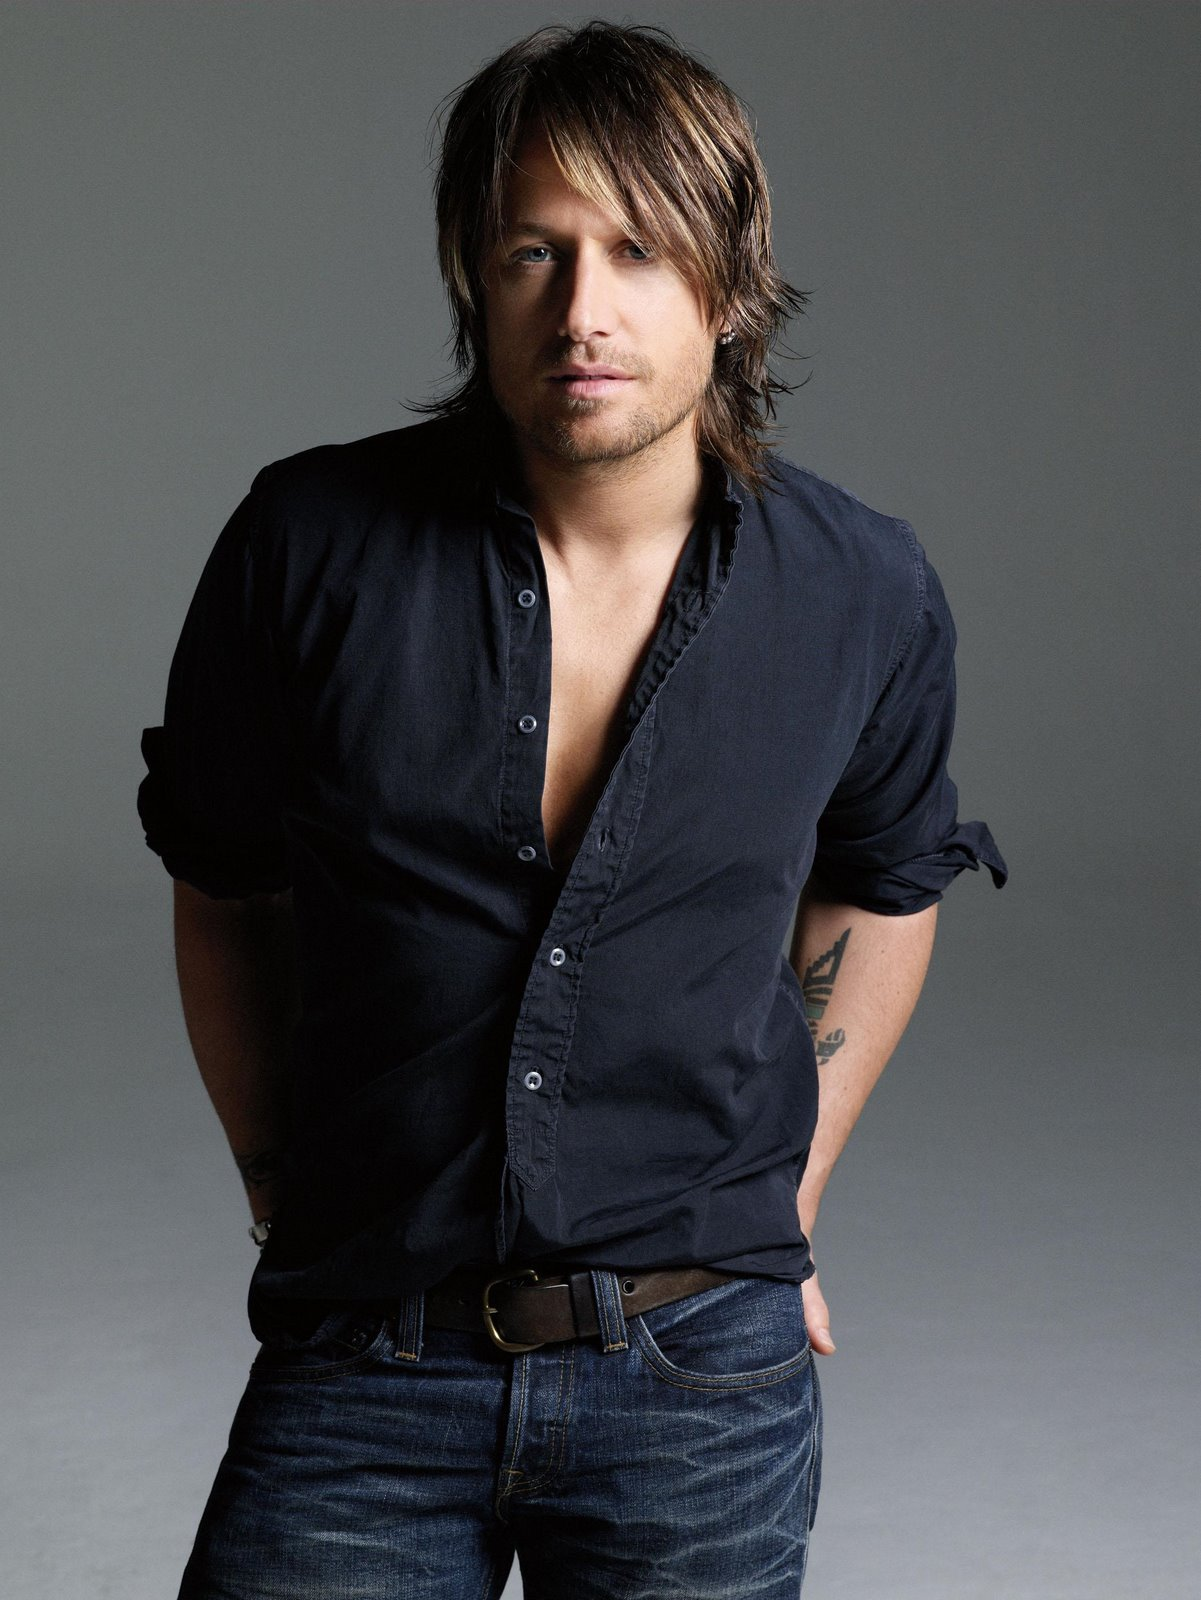 Keith Urban Song Lyrics Metrolyrics